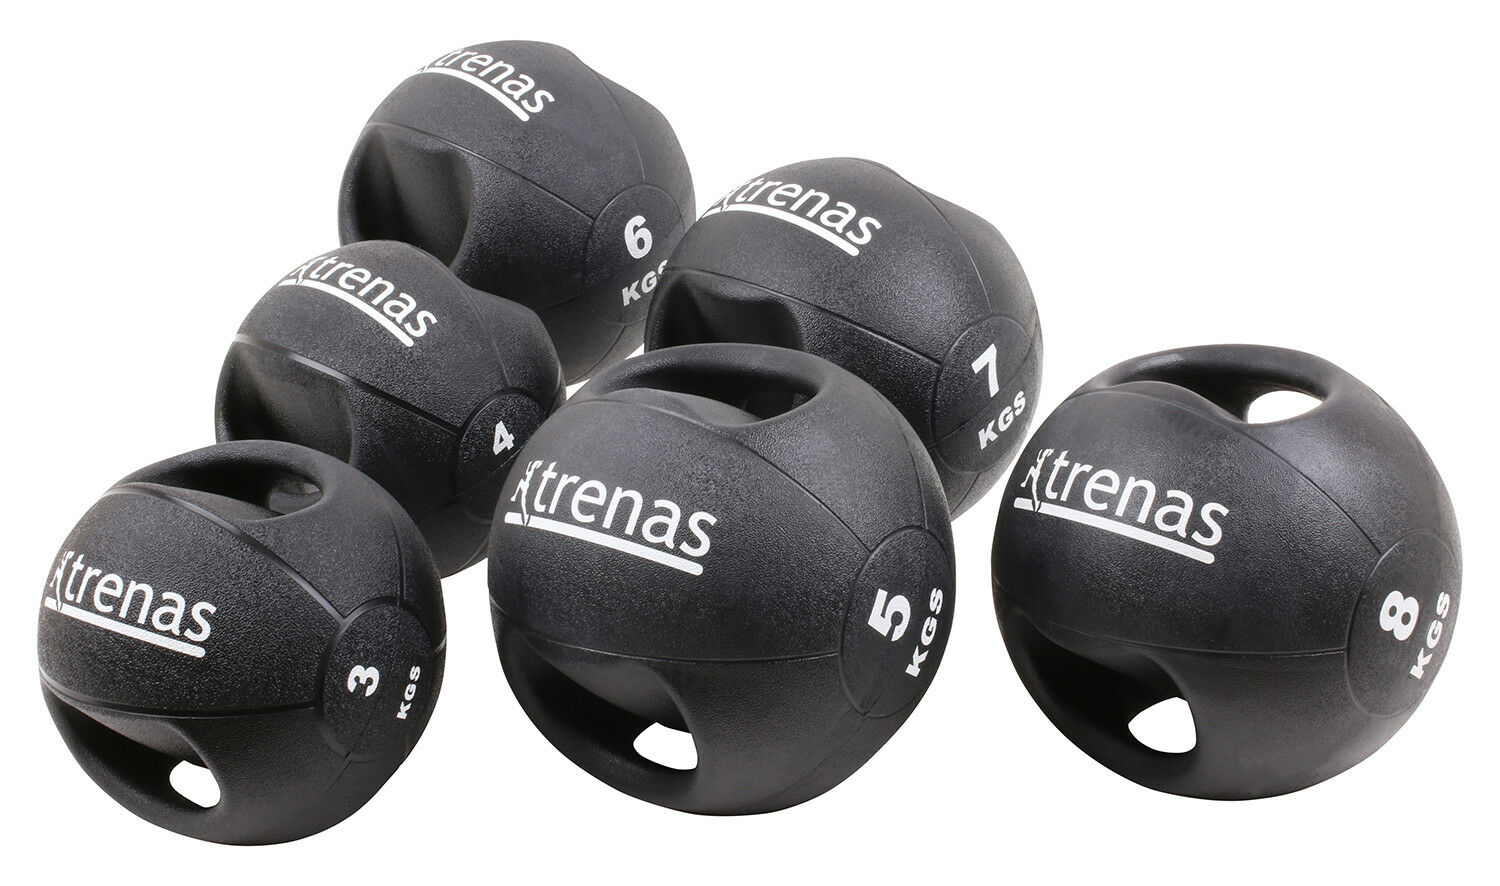 TRENAS PRO Professional Double Handle Medicine Ball - 3  4  5  6  7  8  9  10 KG